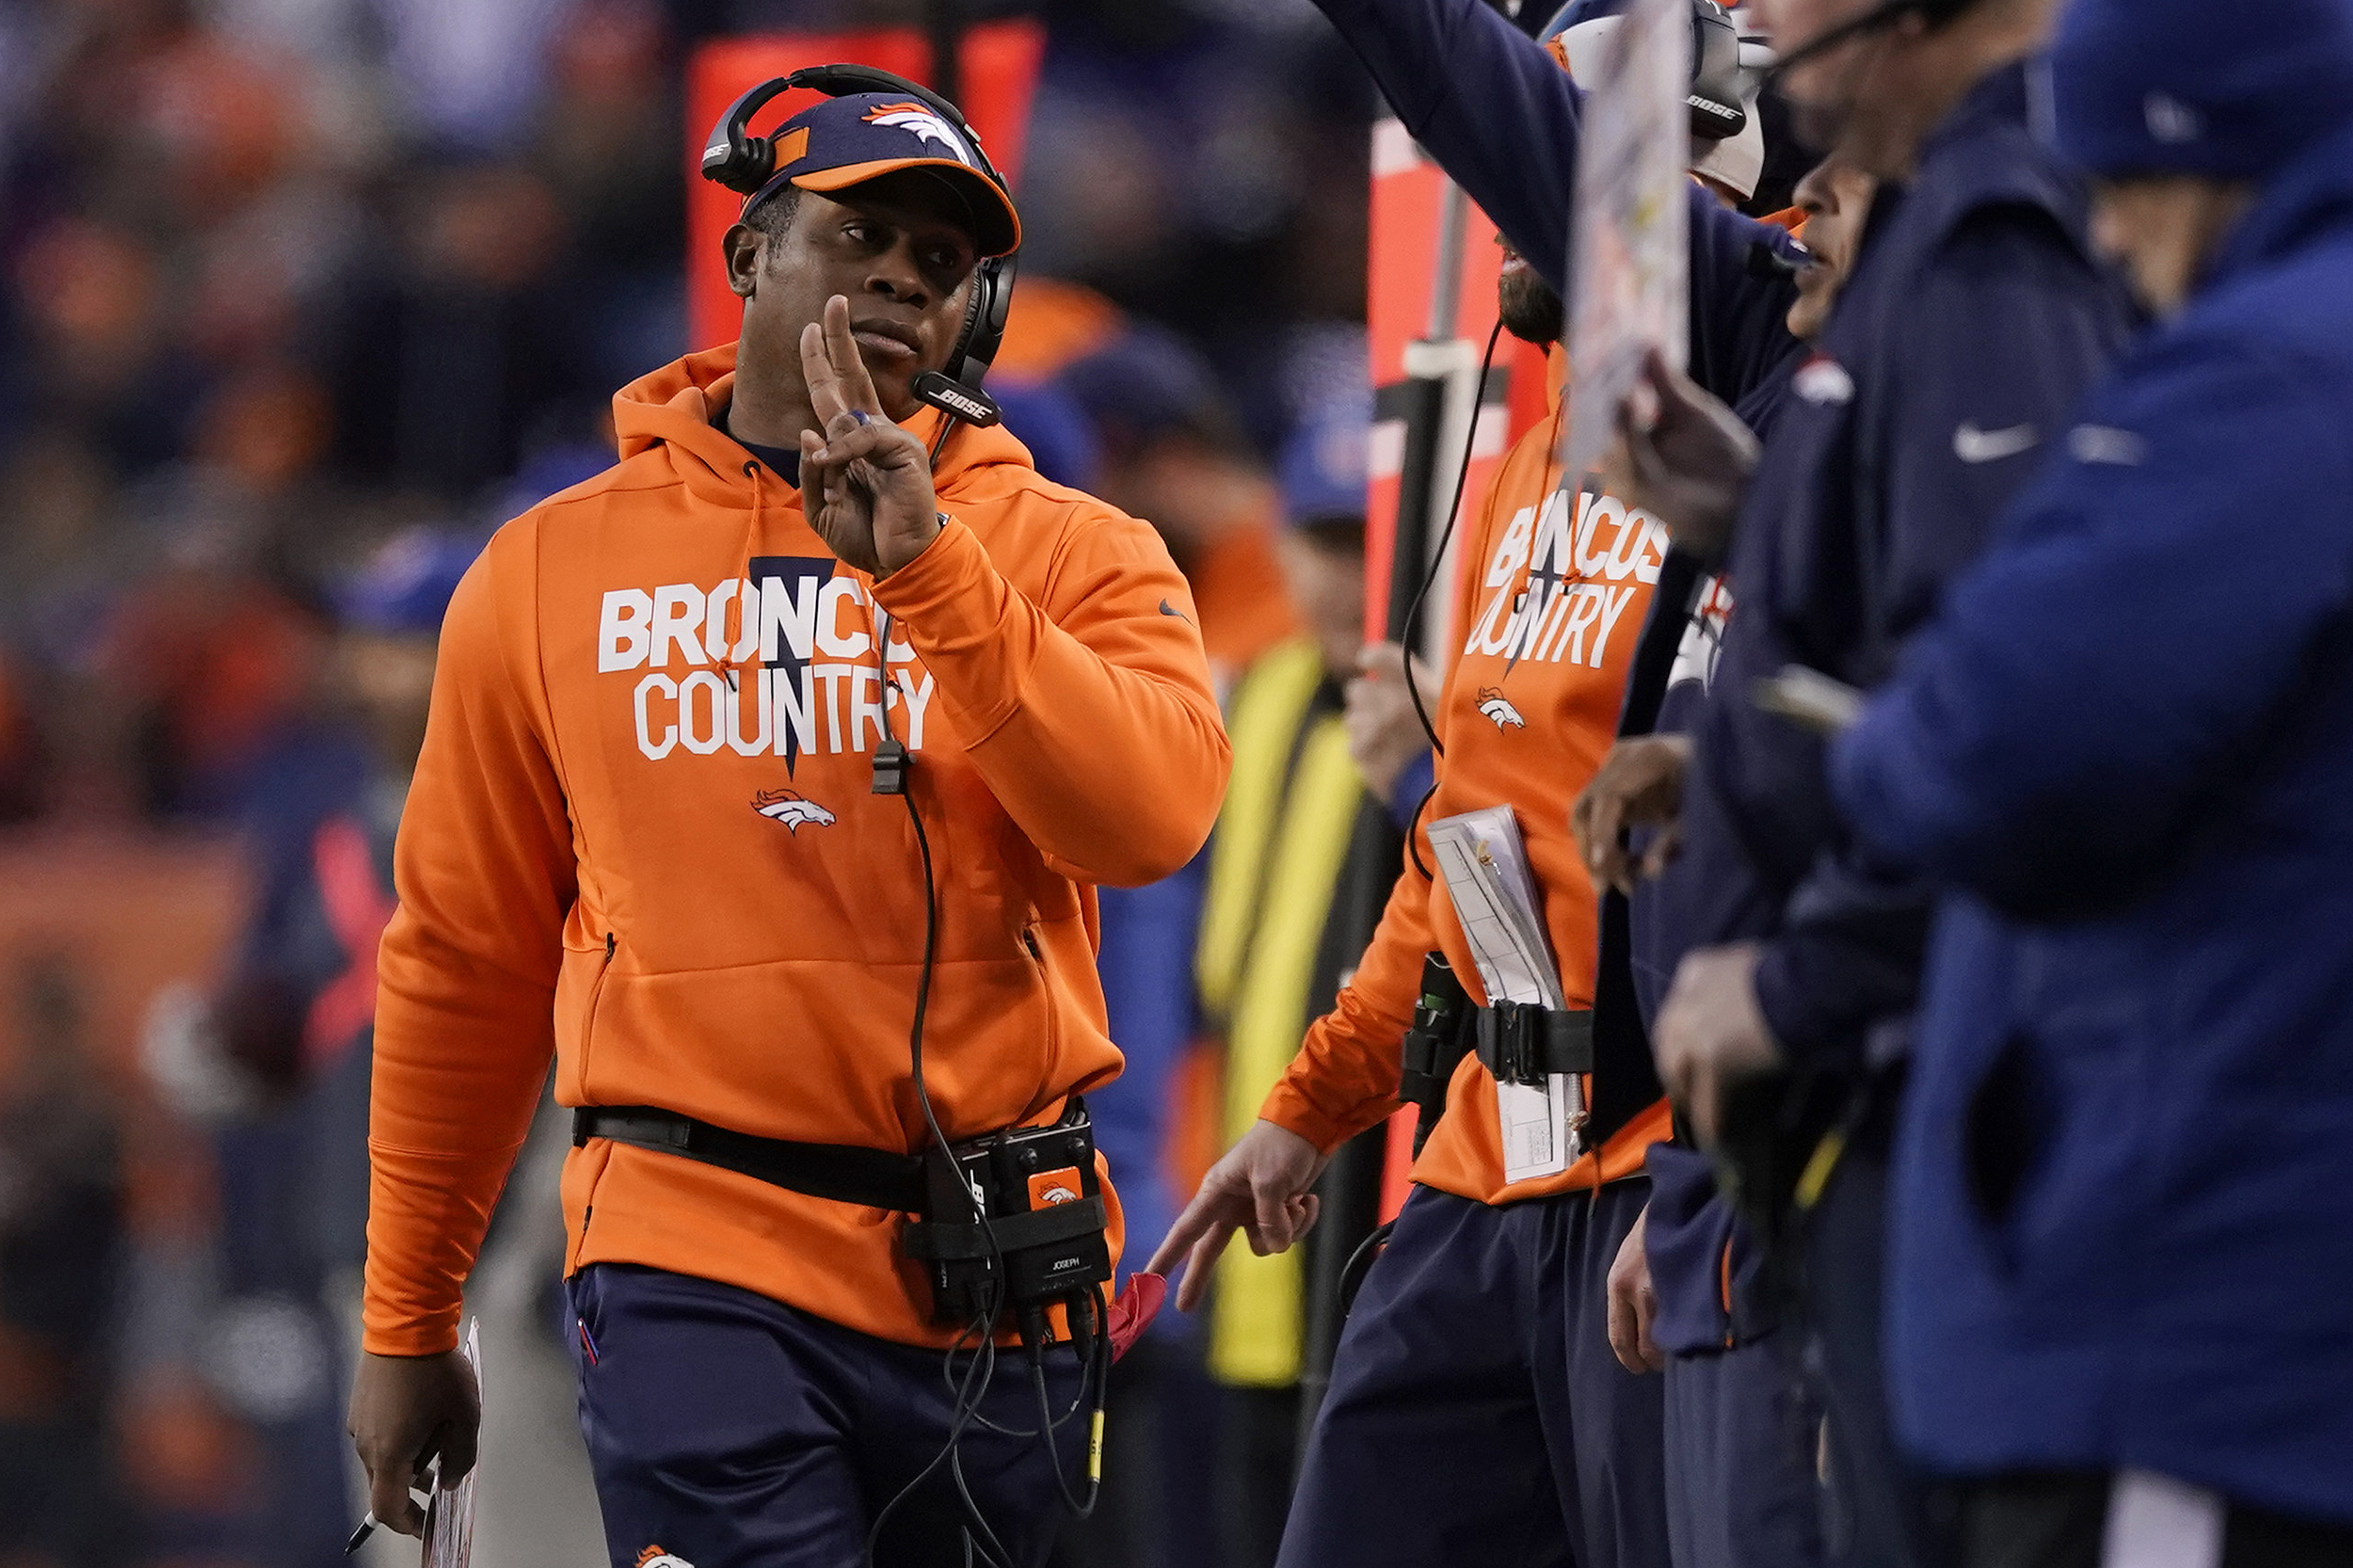 <p>Denver Broncos head coach Vance Joseph on the sideline during Sunday'sgame against the Los Angeles Chargers, Sunday, Dec. 30, 2018, in Denver.</p>